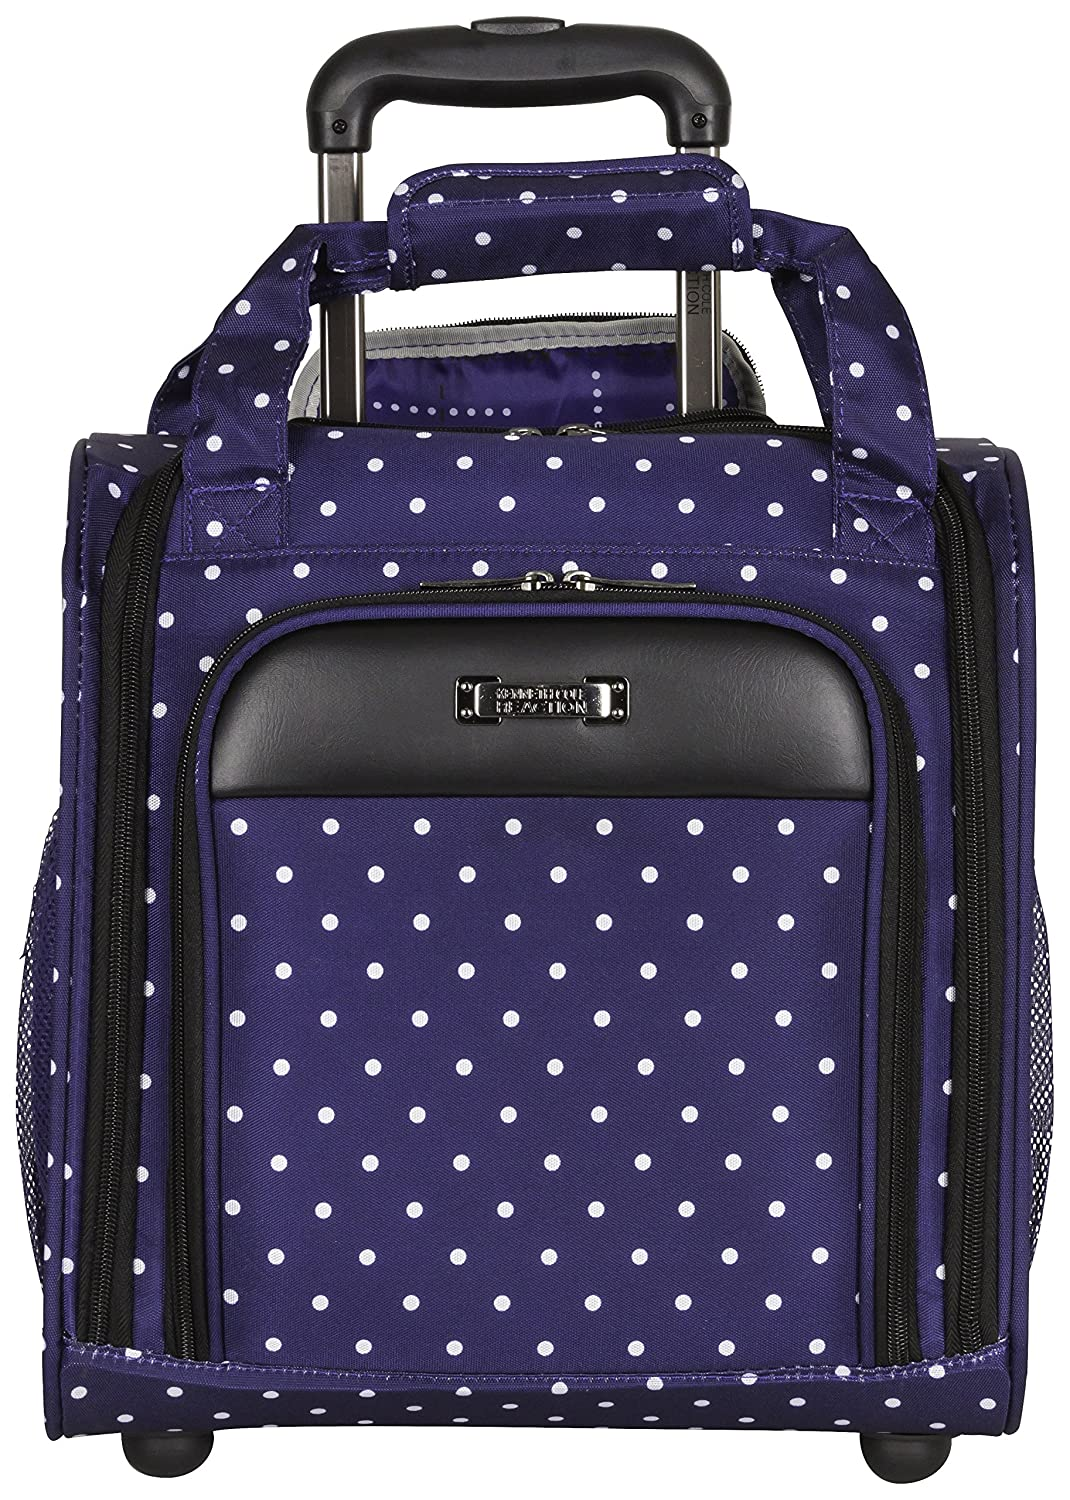 Kenneth Cole Reaction Dot Matrix 14' 600d Polka Dot Polyester 2-Wheel Underseater Carry-on, Navy Heritage-Kenneth Cole Luggage 5710097